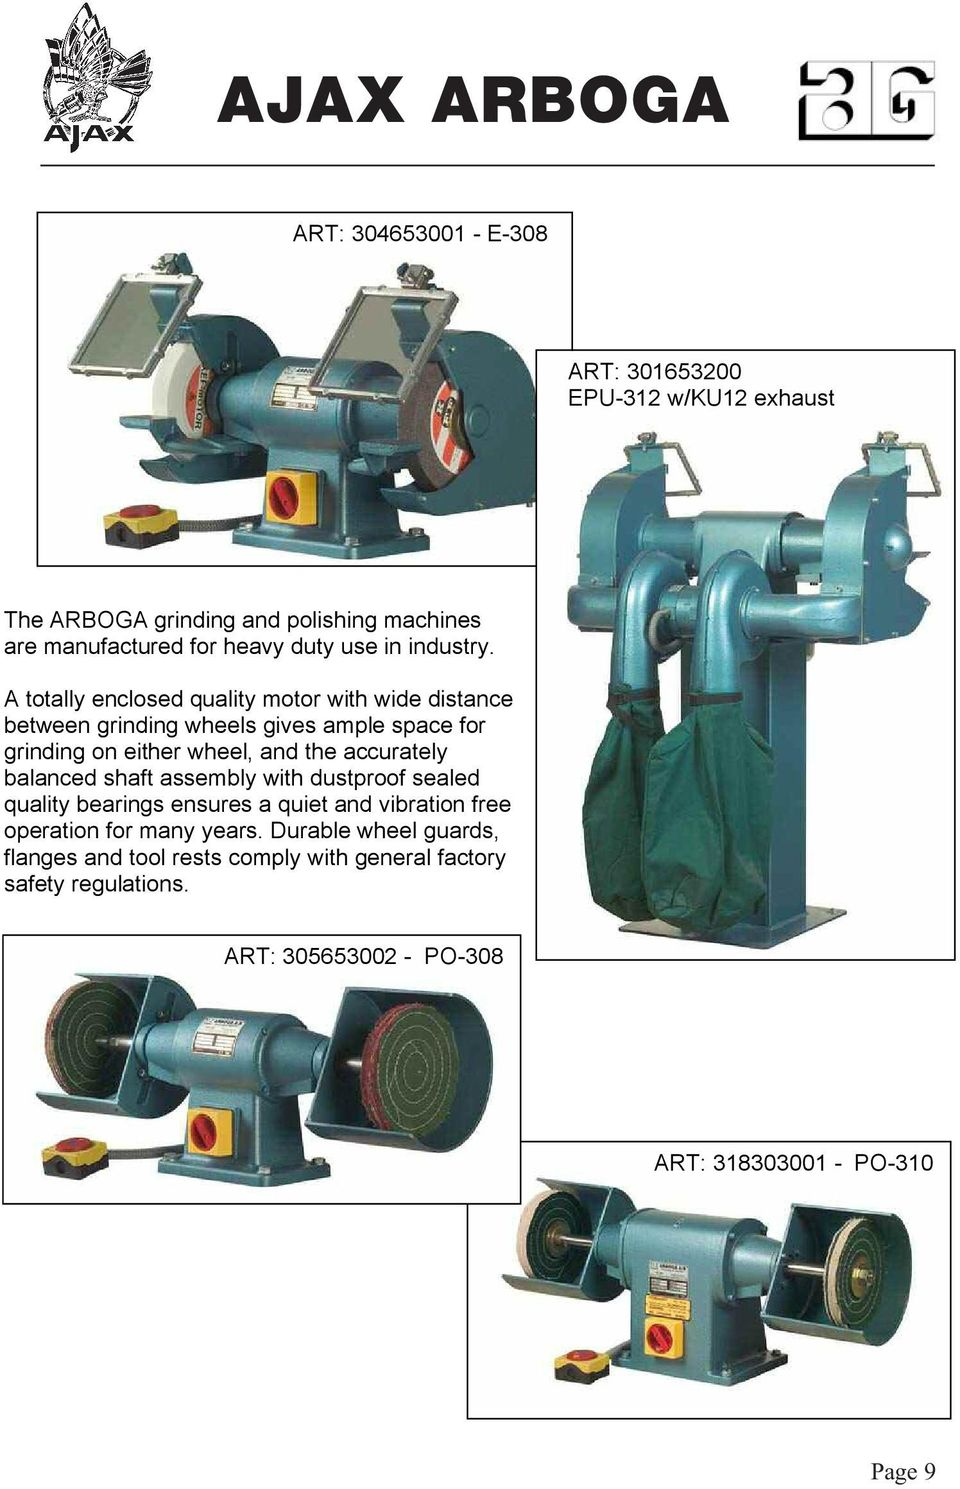 Ajax Arboga Pdf. A Totally Enclosed Quality Motor With Wide Distance Between Grinding Wheels Gives Le Space For. Wiring. Br Tool Bench Grinder Wiring Diagram At Scoala.co